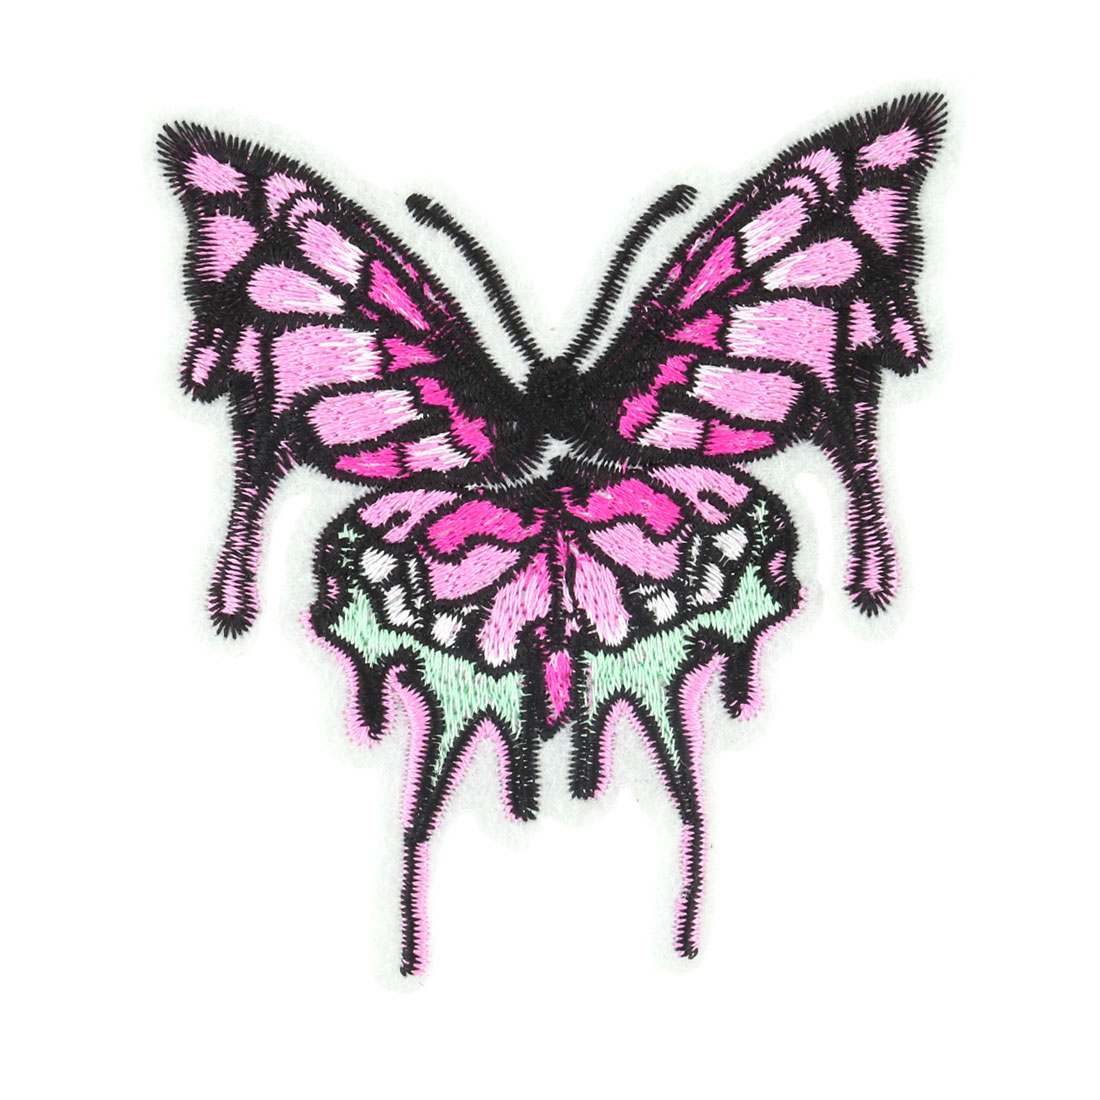 Unique Bargains Home Polyester Butterfly Design Embroidered DIY Clothes Decor Lace Applique Pink